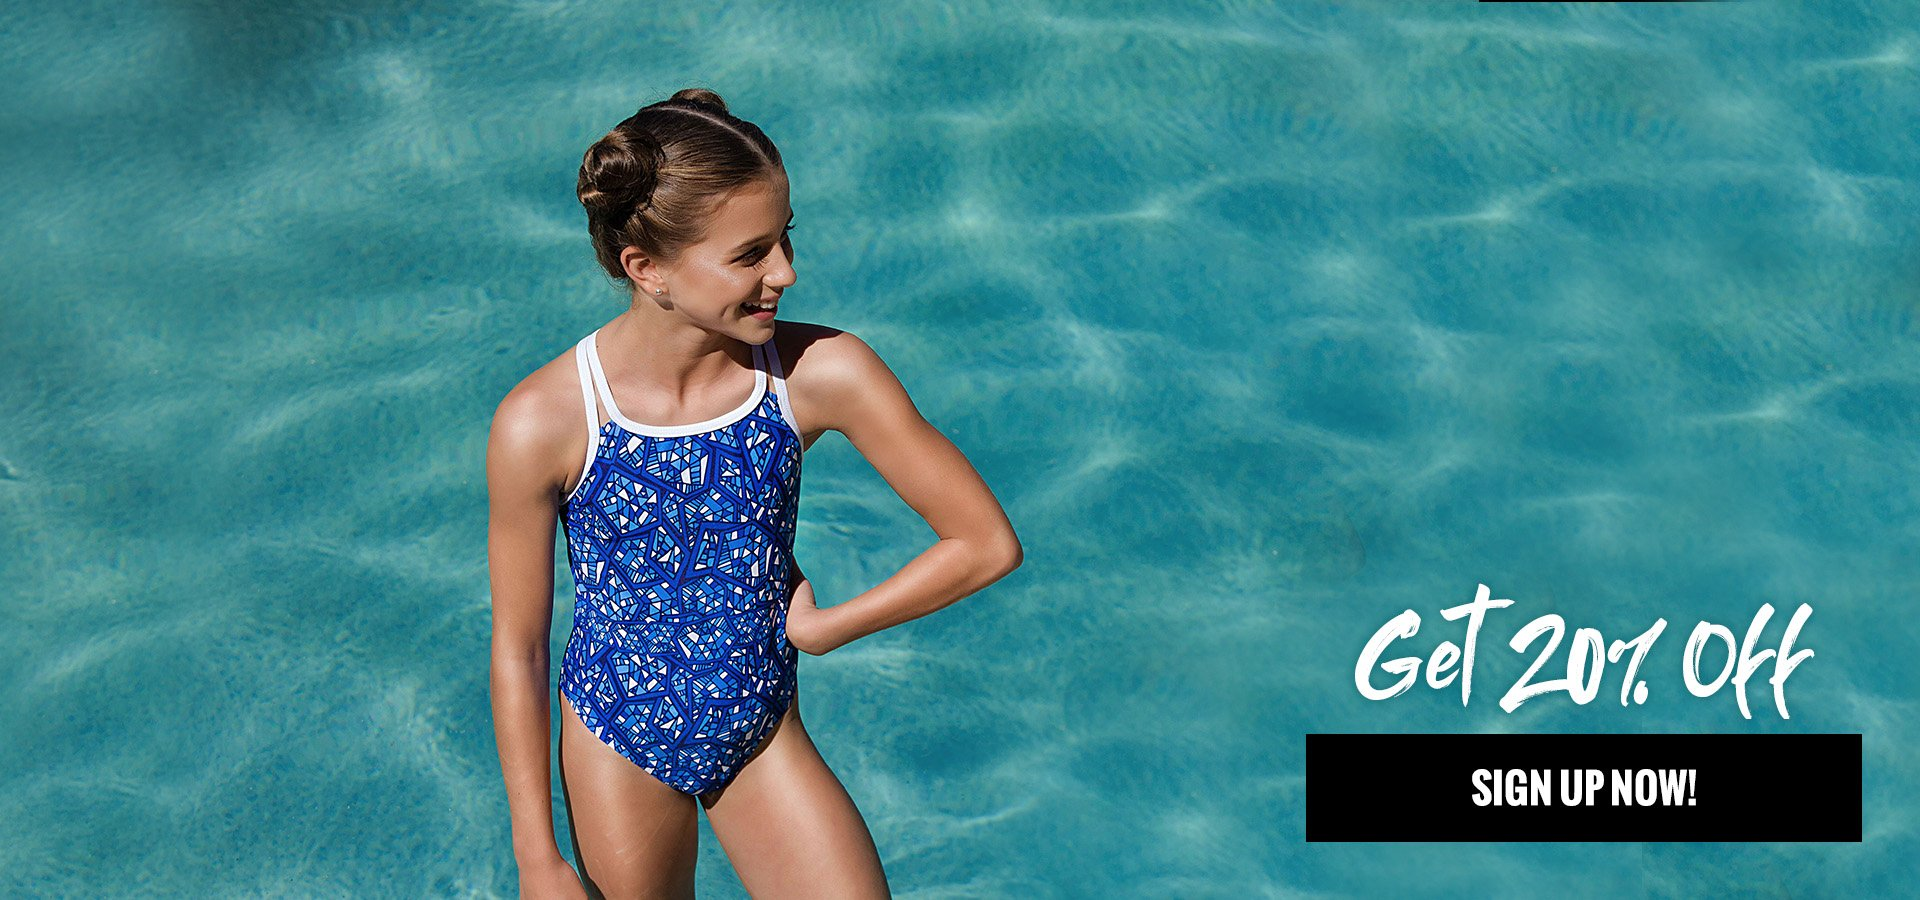 SHOP ONLINE // SPORTS TRAINING SWIMWEAR // ACTIVE SWIMWEAR